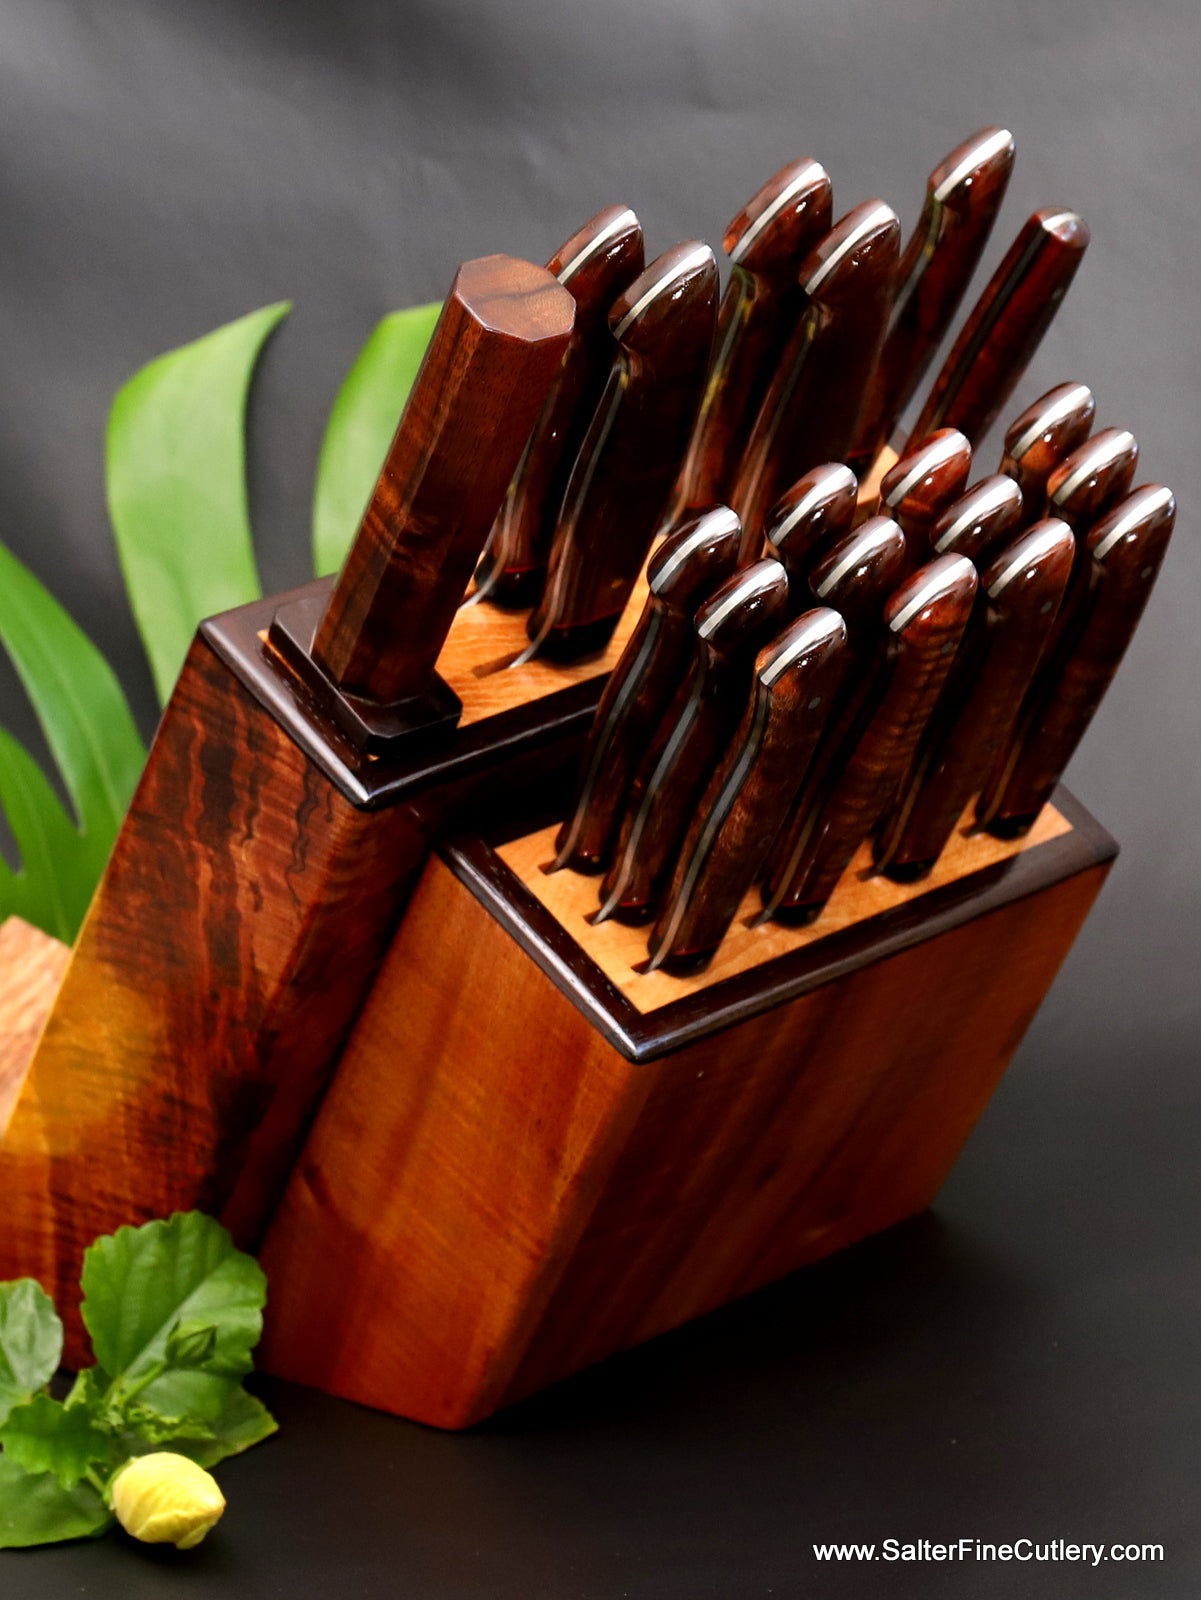 19-piece steak and chef knife set in knife block by Salter Fine Cutlery of Hawaii